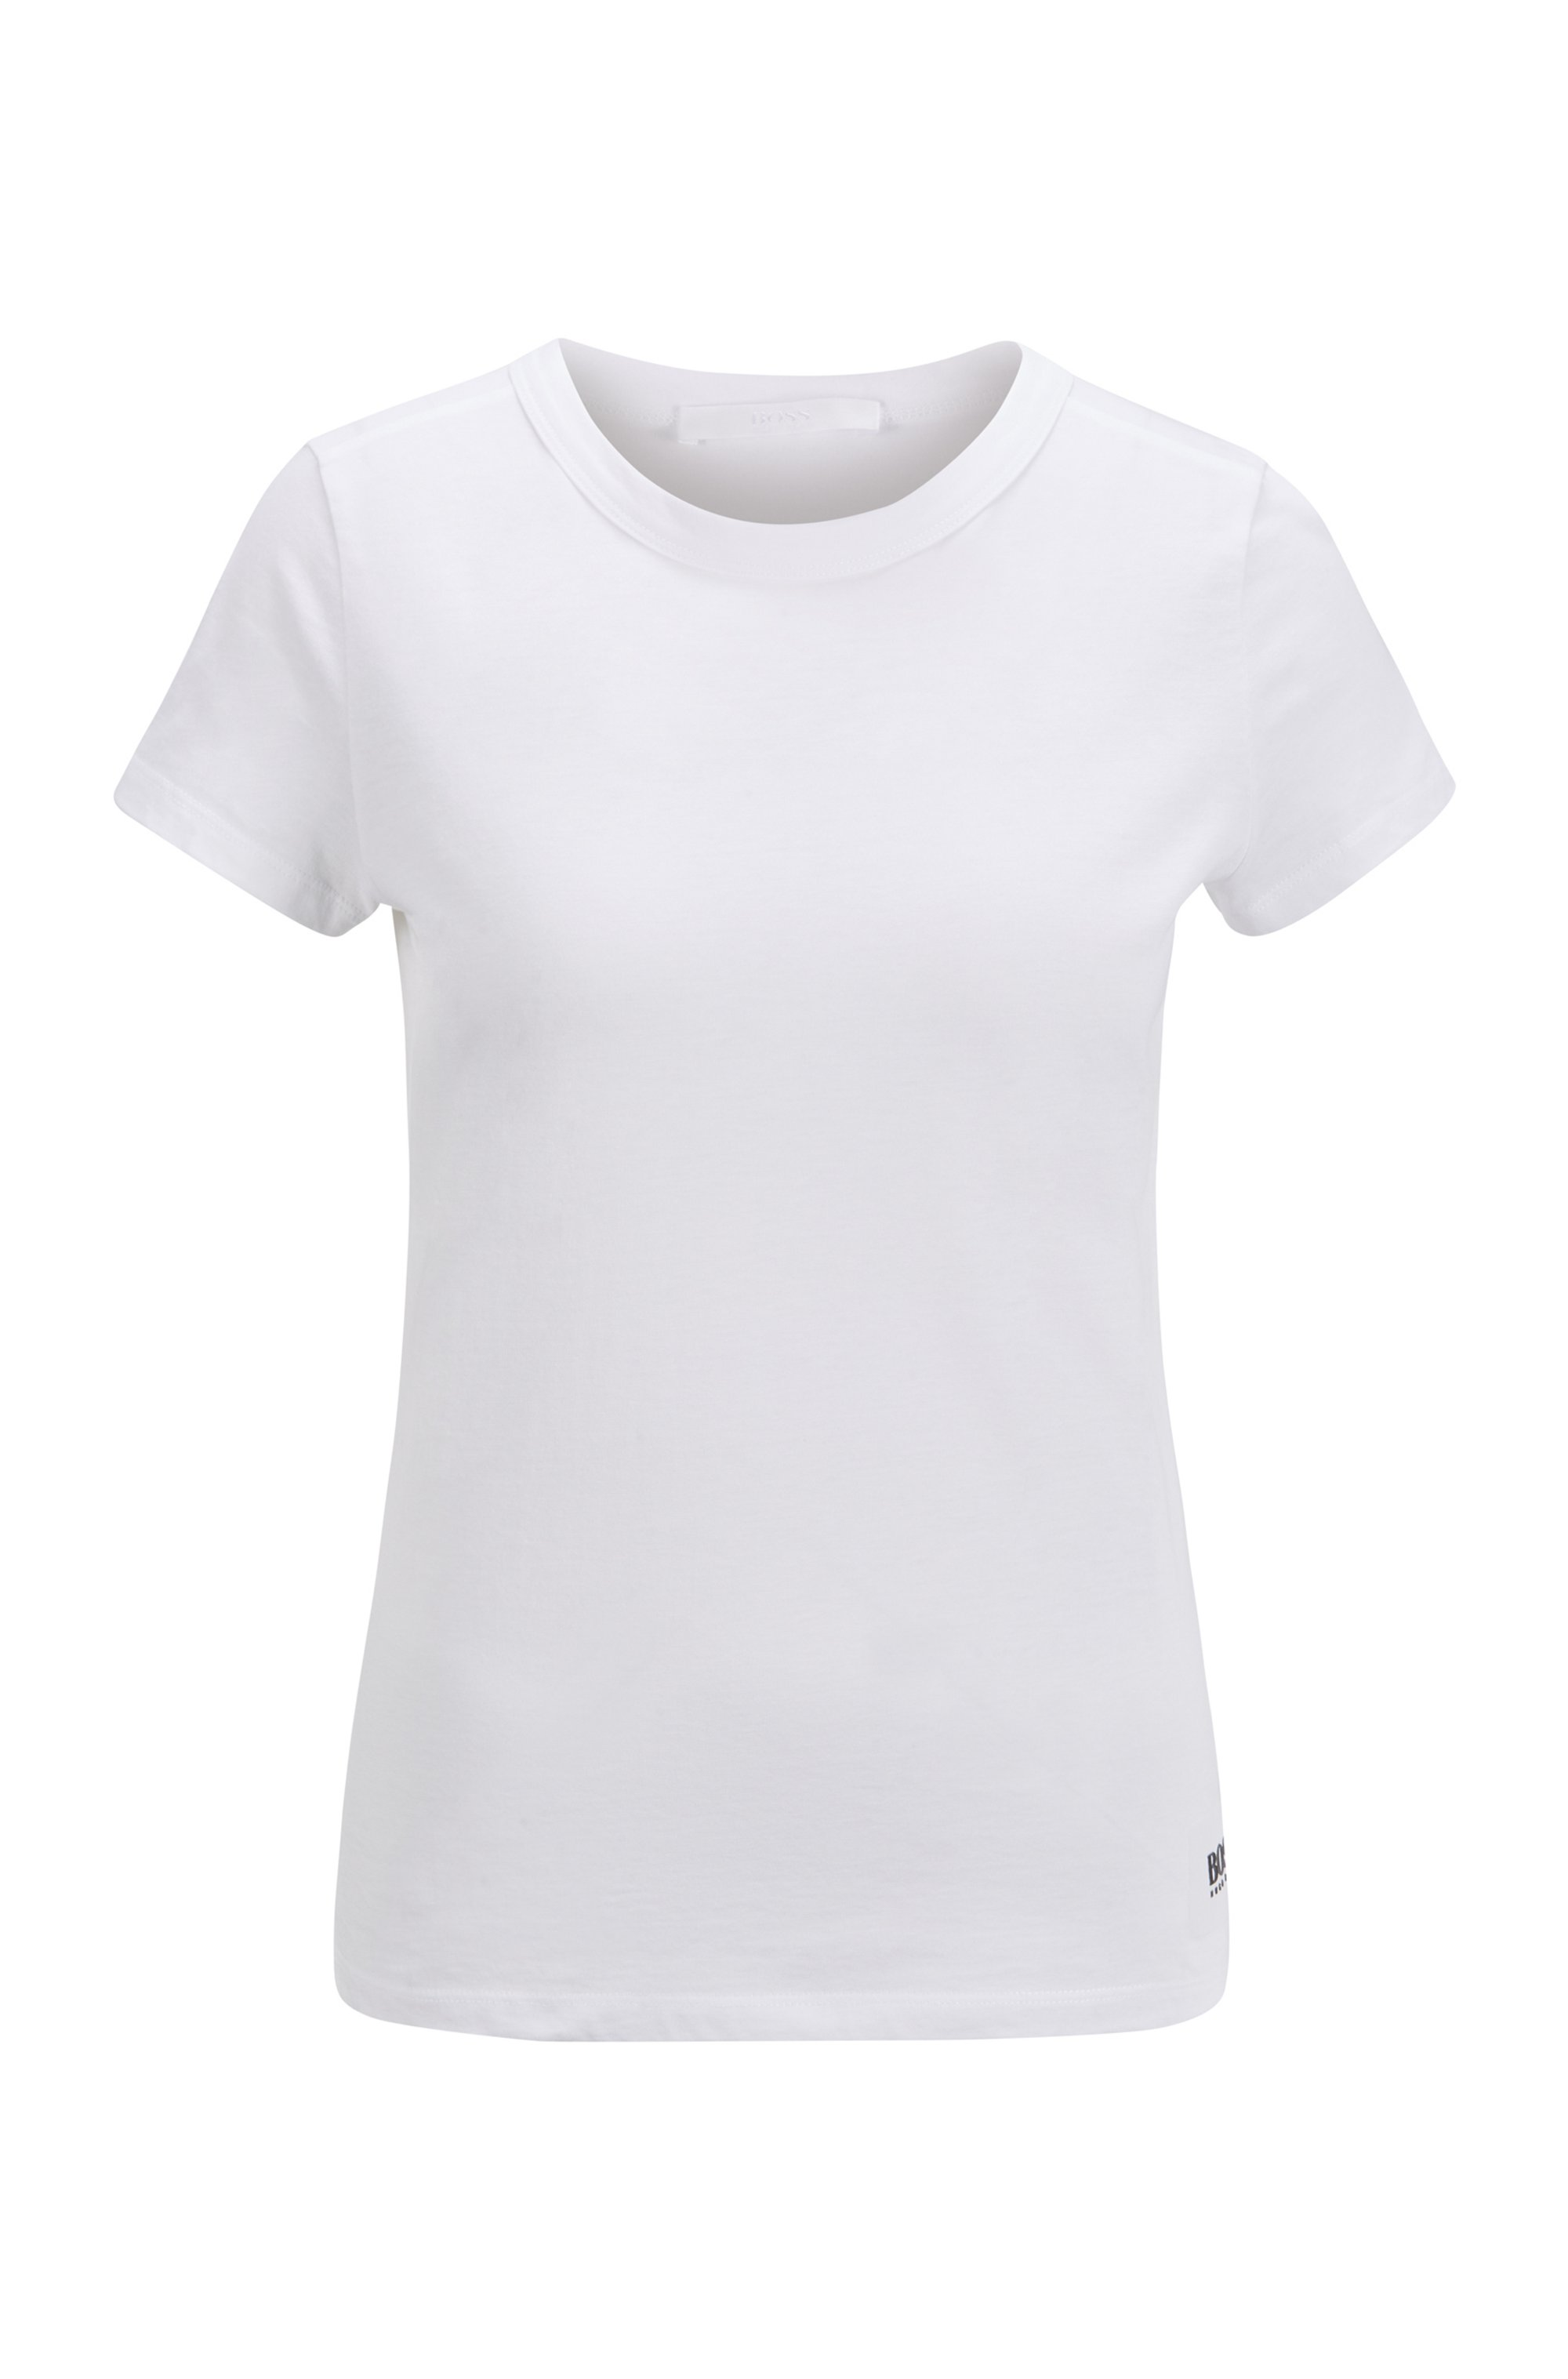 Slim-fit logo T-shirt in cotton and modal, White